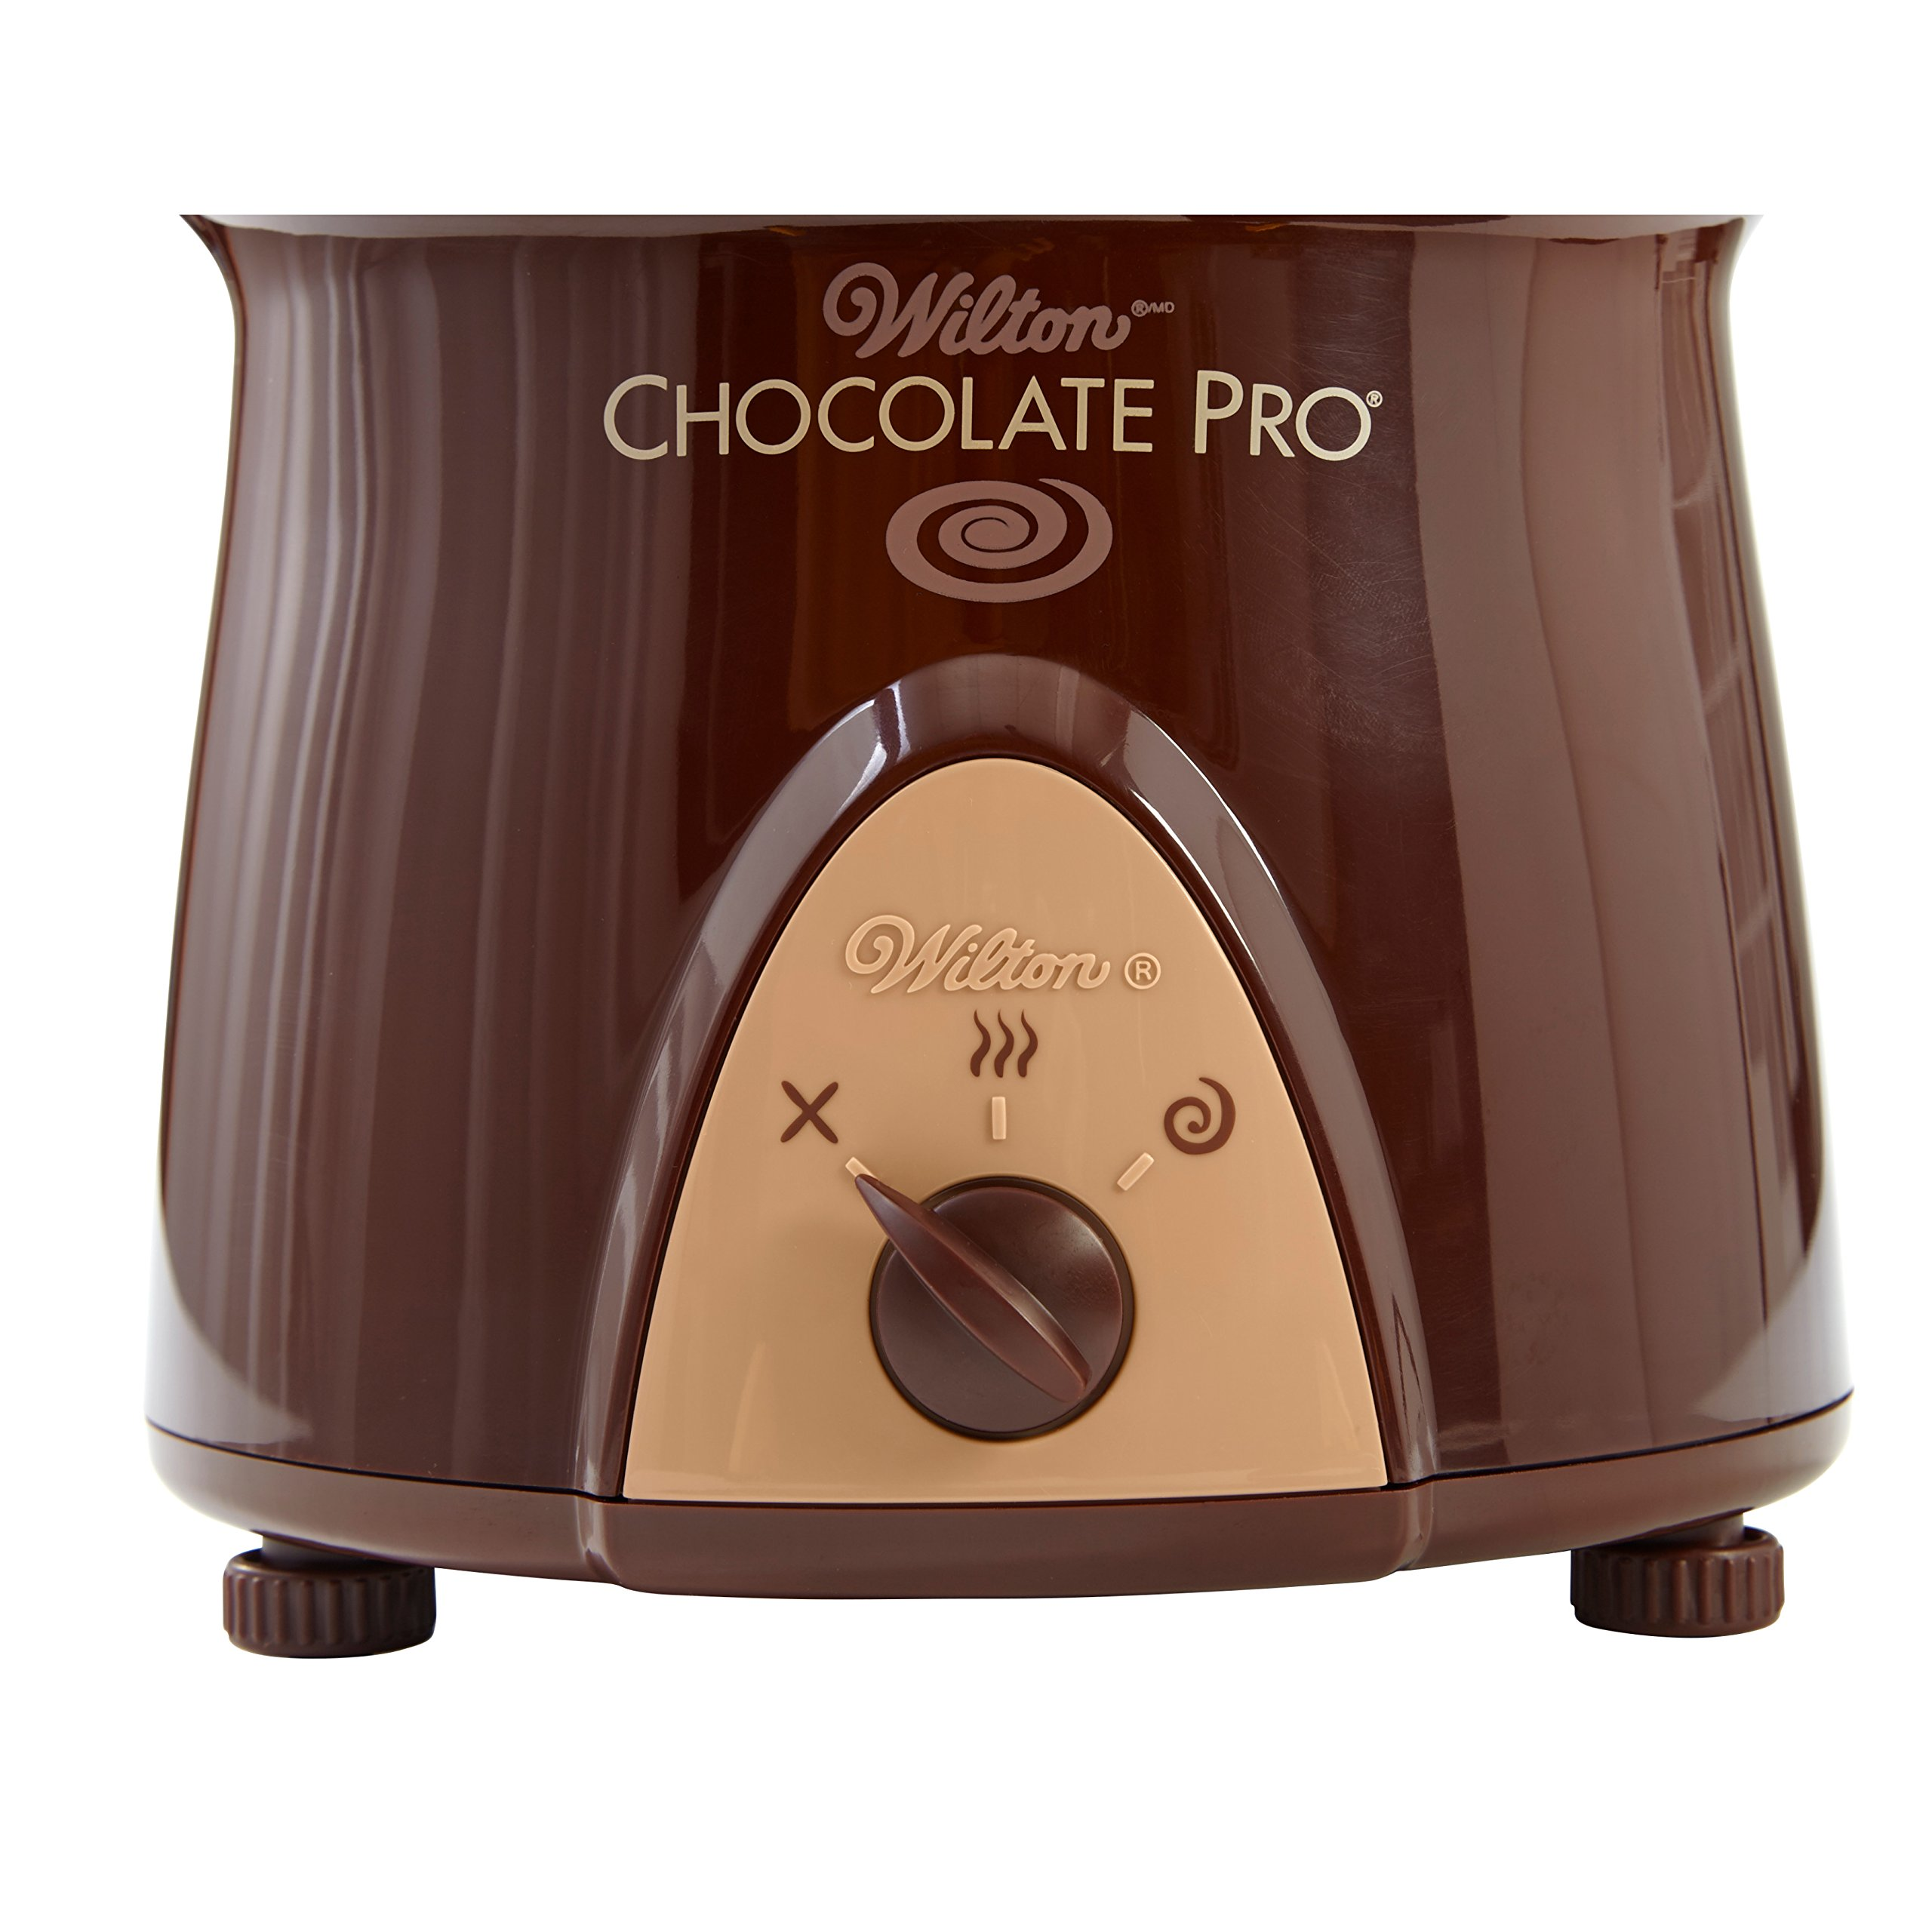 Wilton Chocolate Pro Chocolate Fountain - Chocolate Fondue Fountain, 4 lb. Capacity